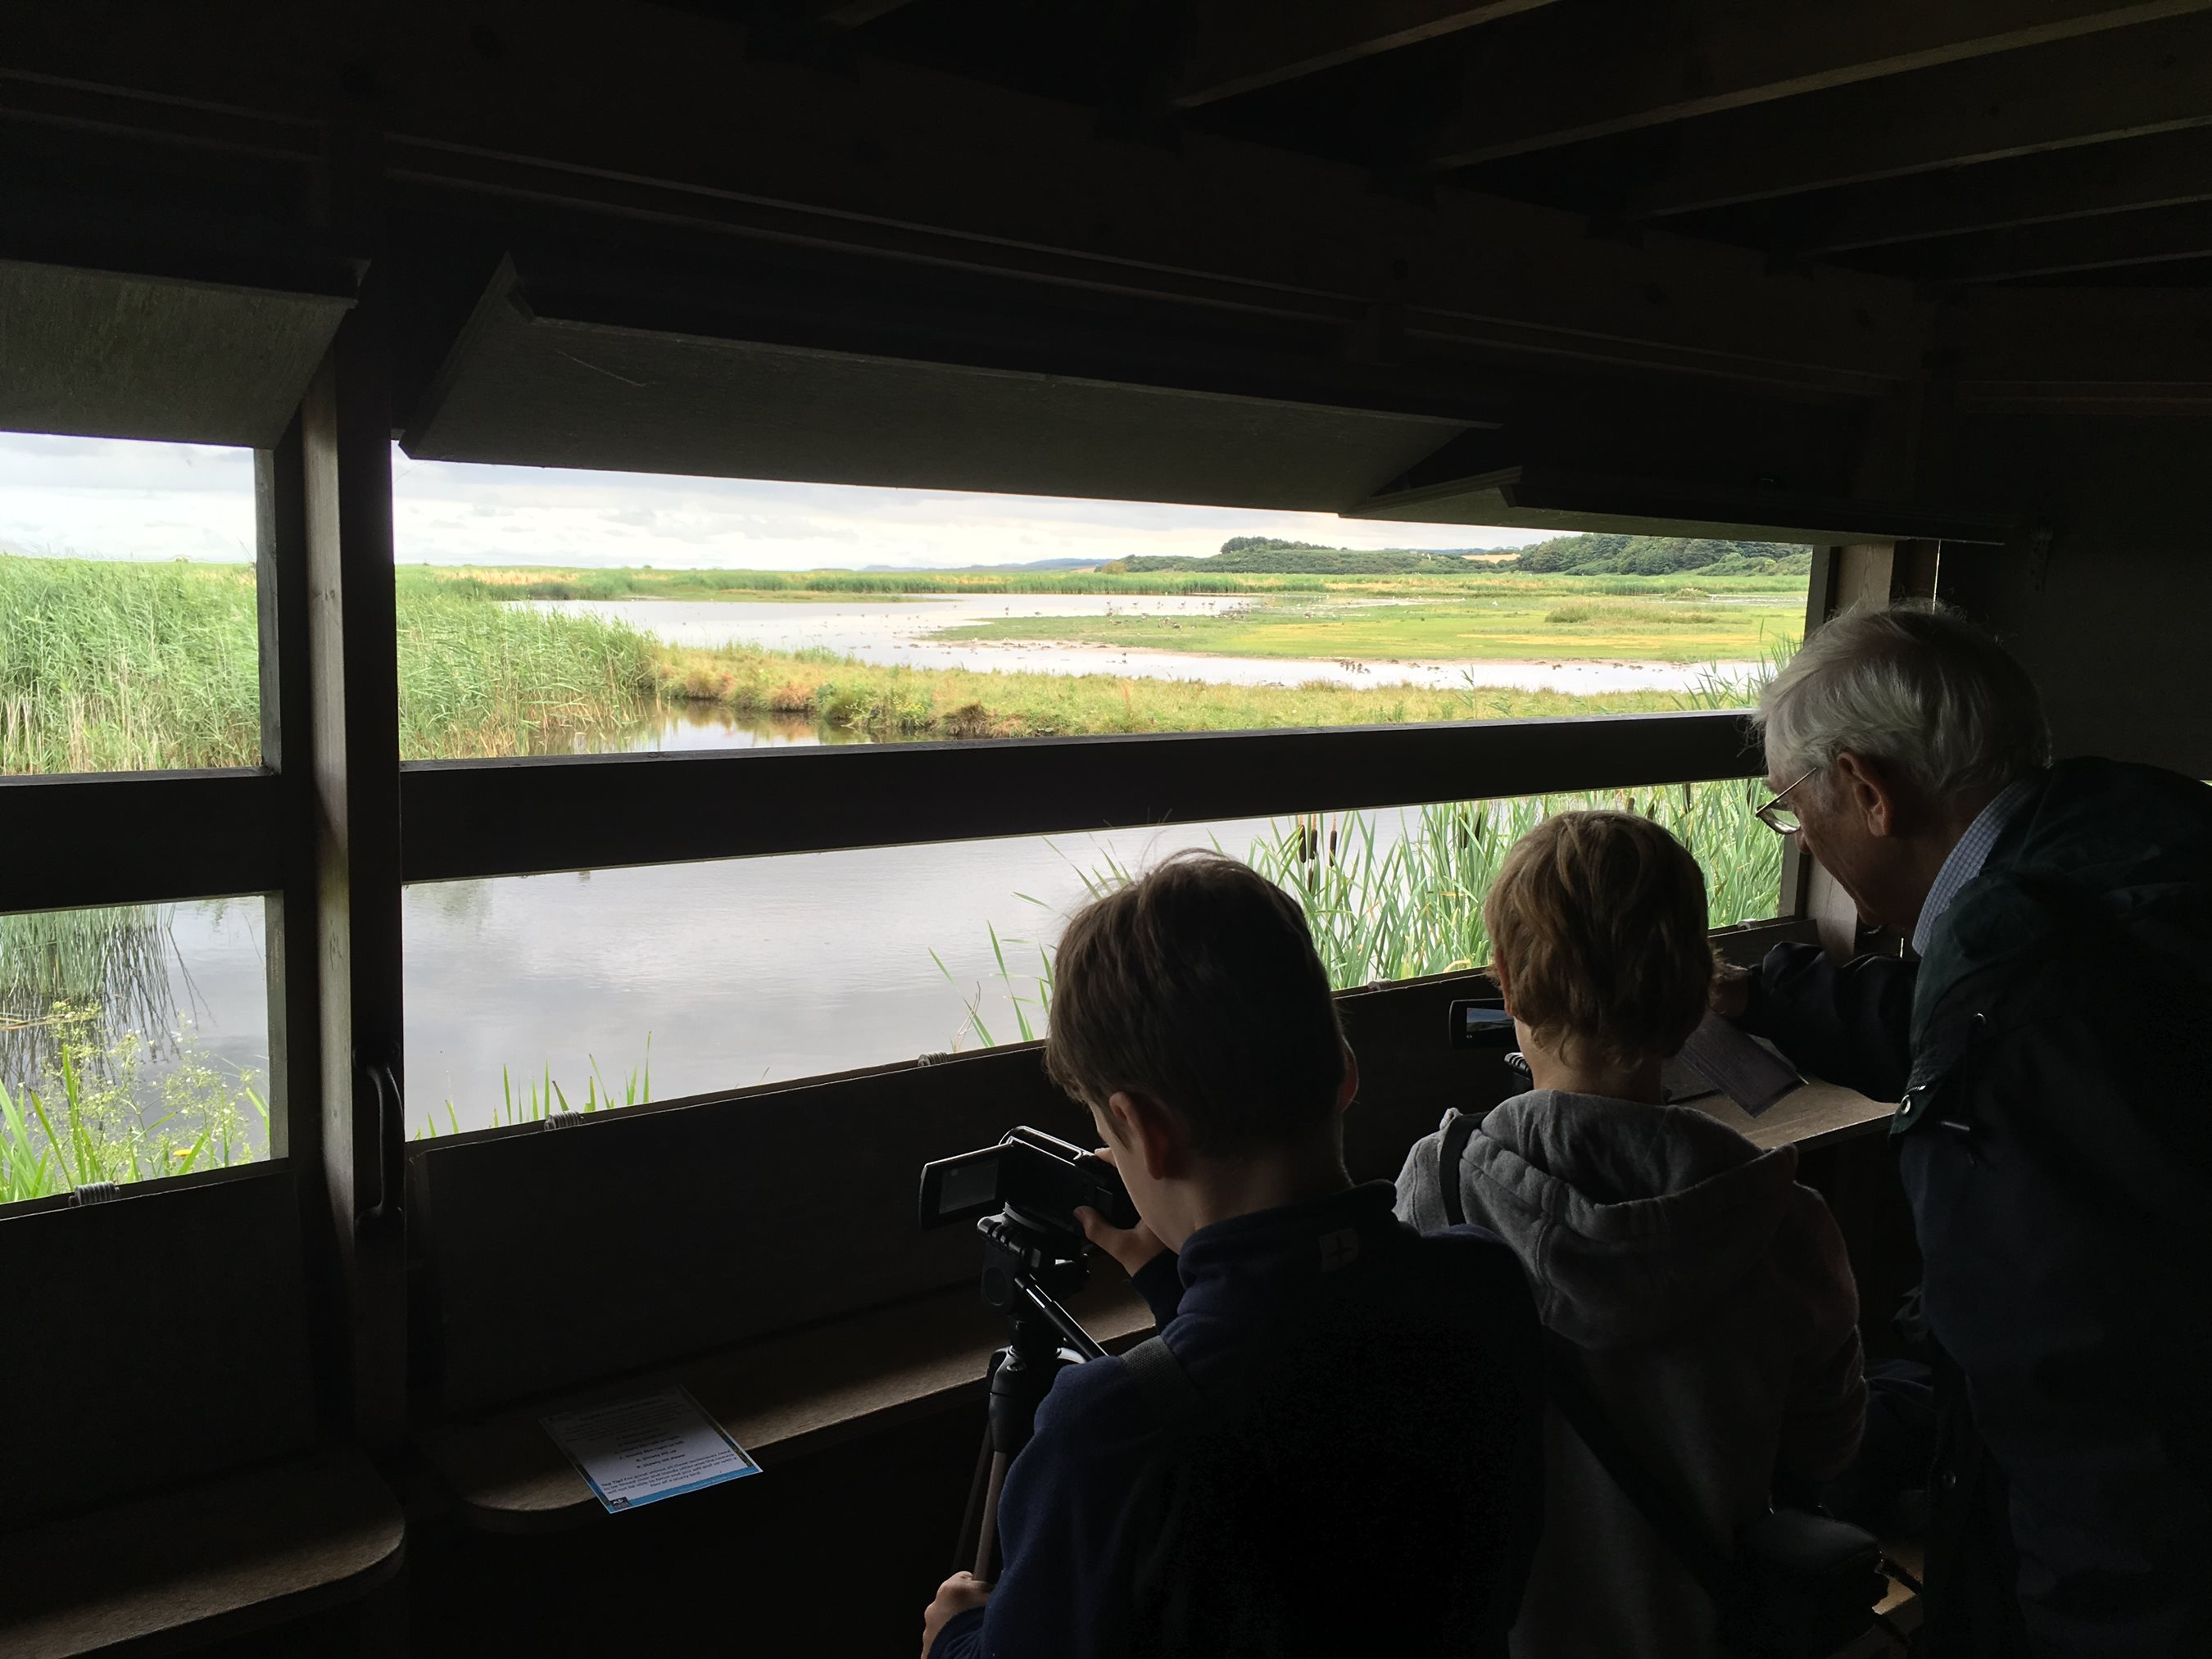 2018-10-26 Capturing Cley